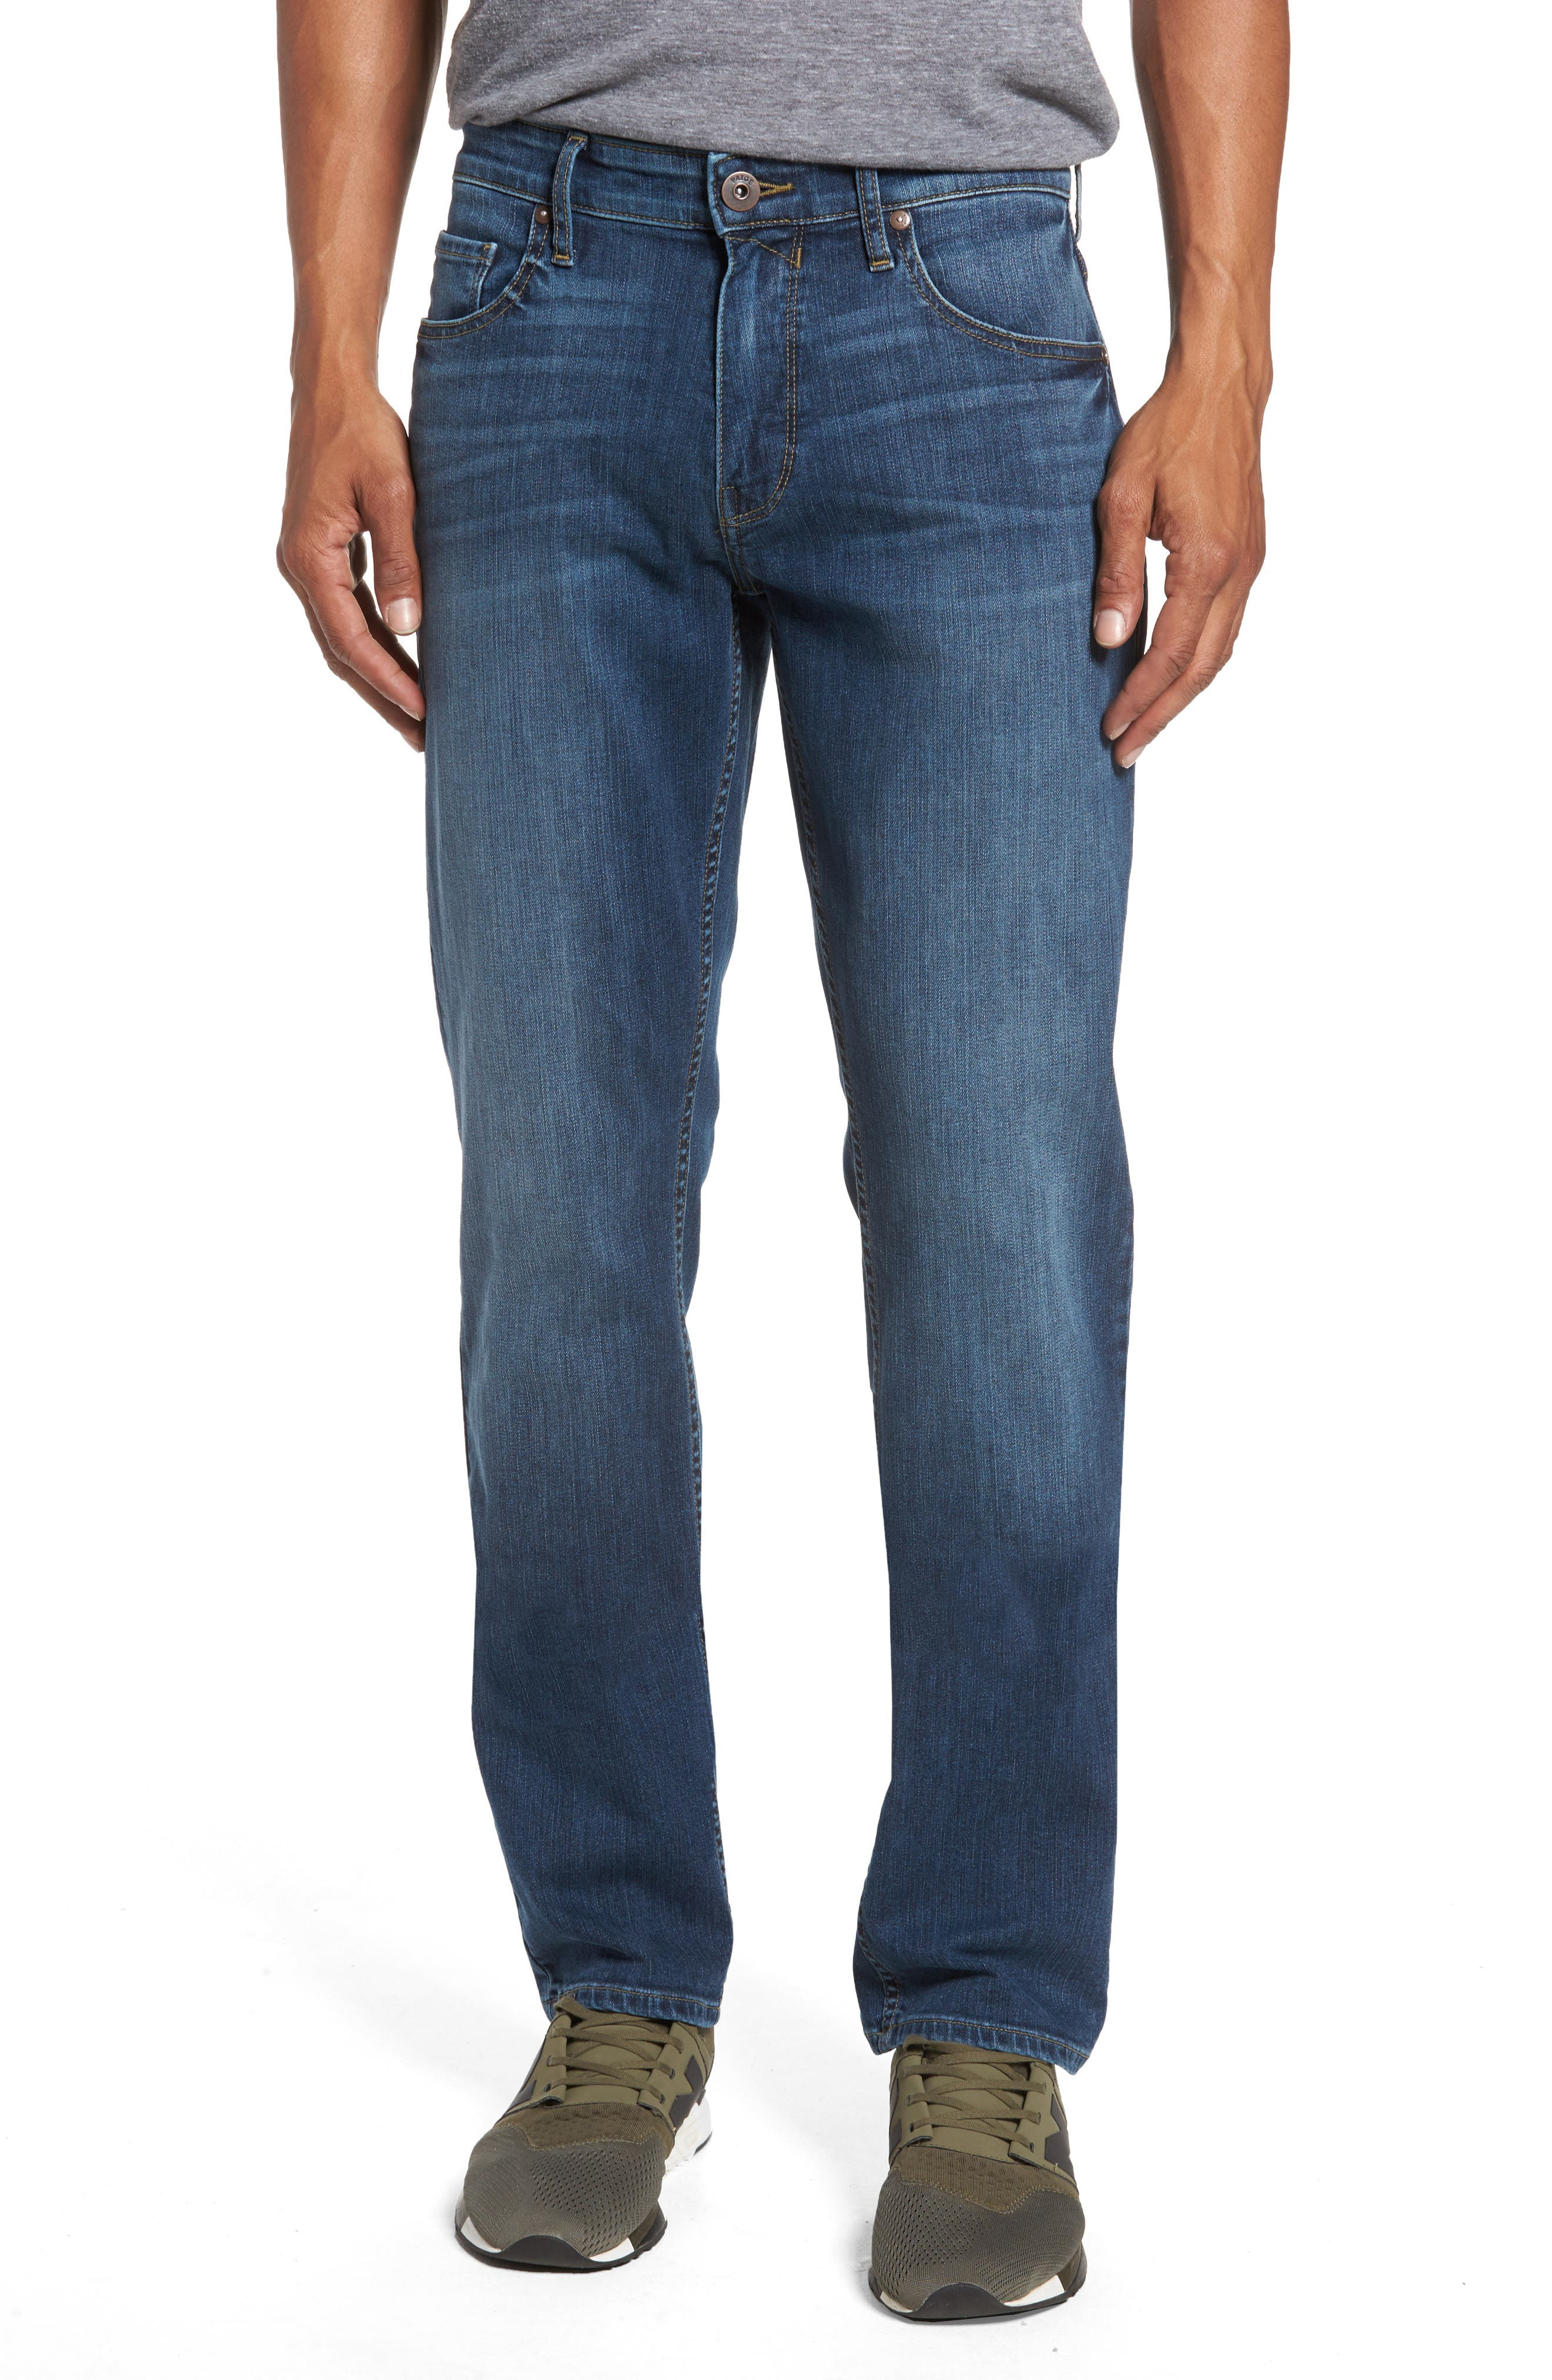 Legacy - Federal Slim Straight Fit Jeans,                         Main,                         color, 400